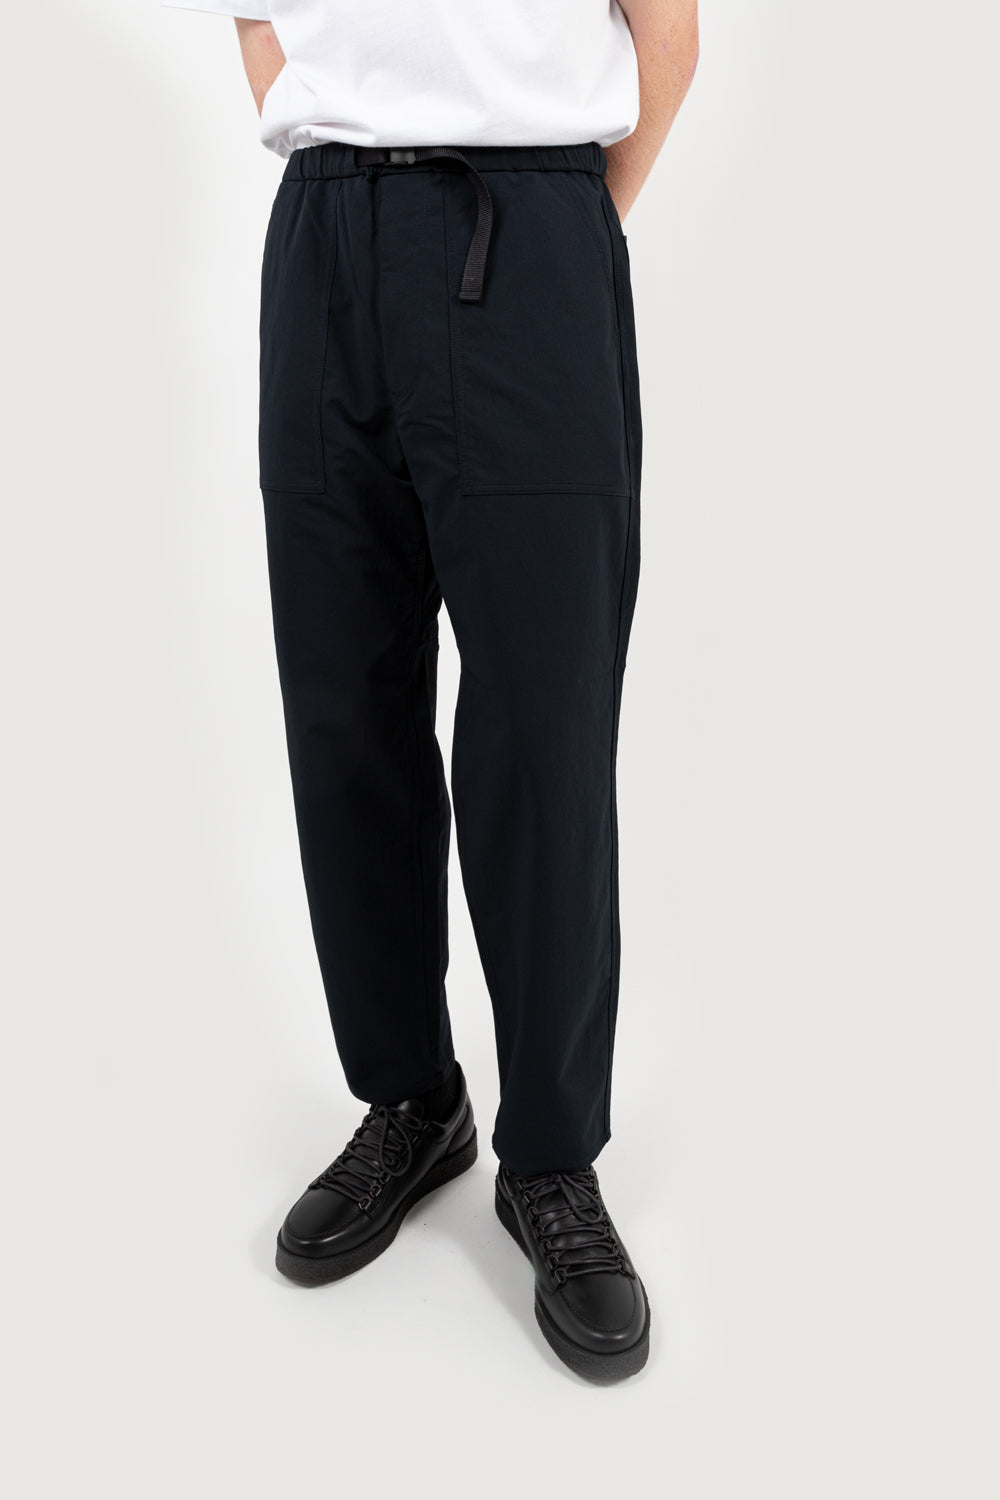 nanamica nanamican alphadry dock pants in dark navy